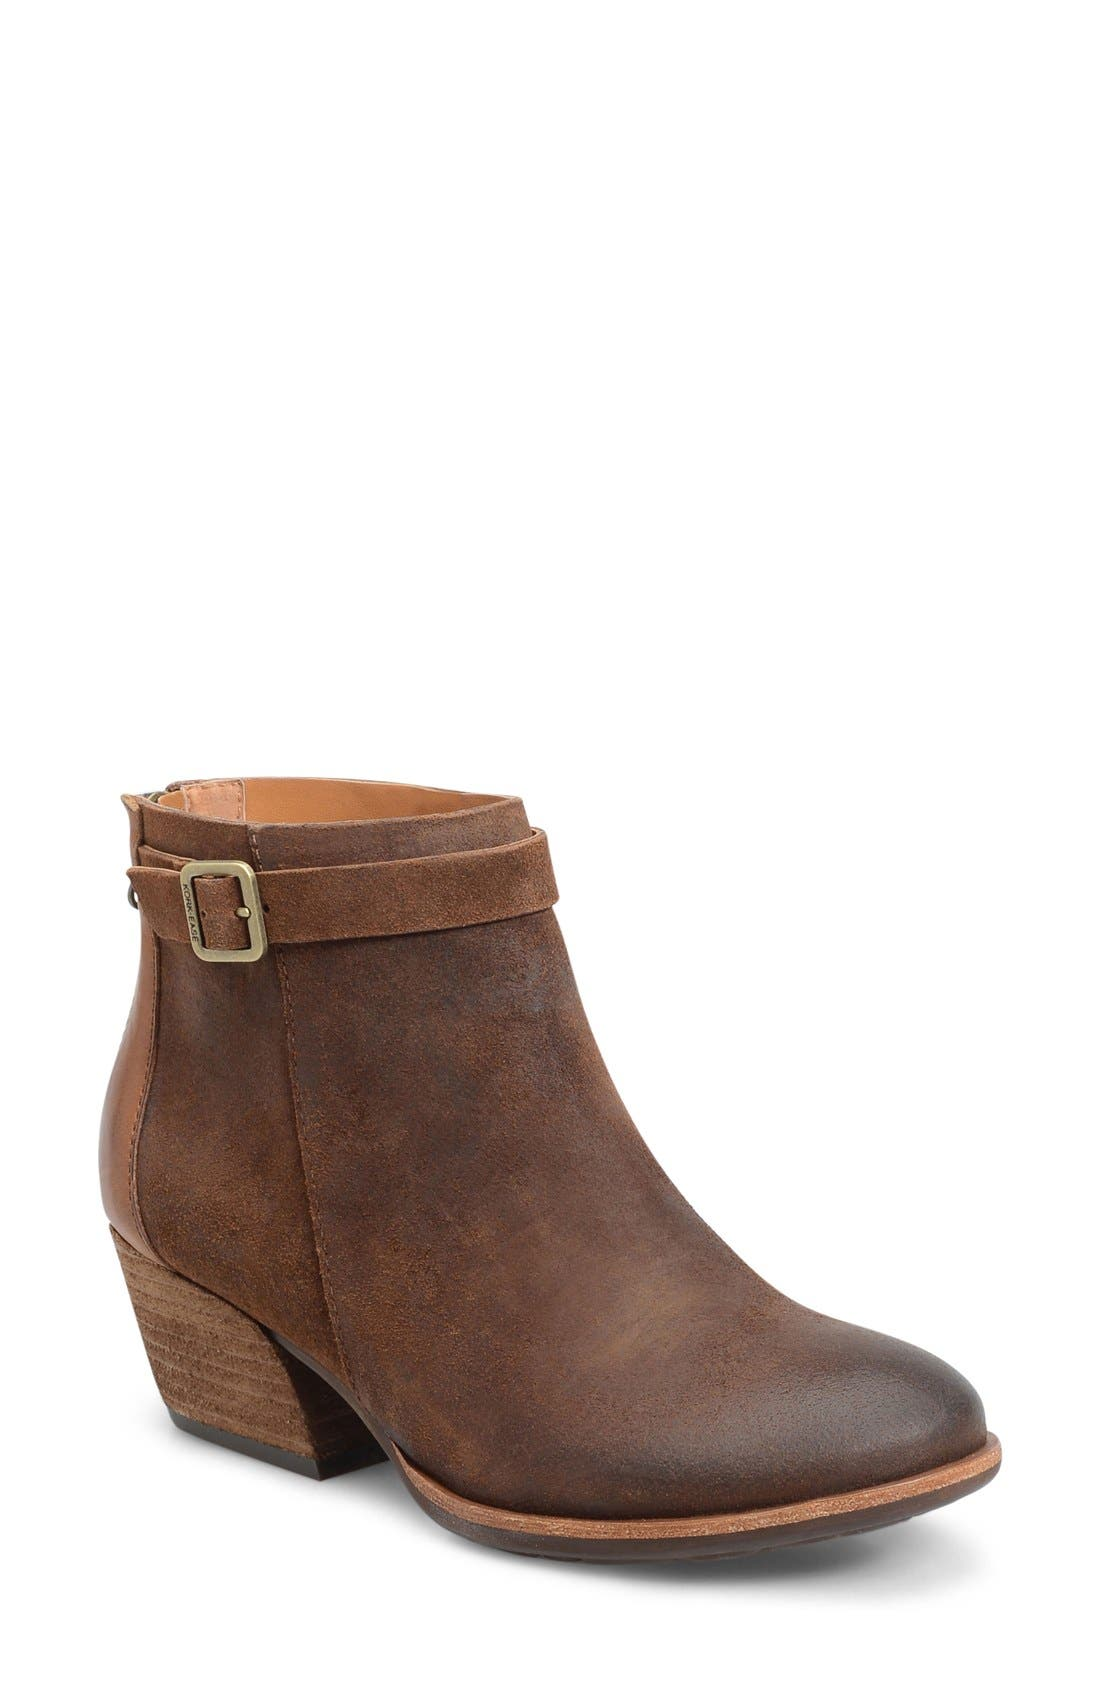 Alternate Image 1 Selected - Kork-Ease® 'Maddelena' Bootie (Women)